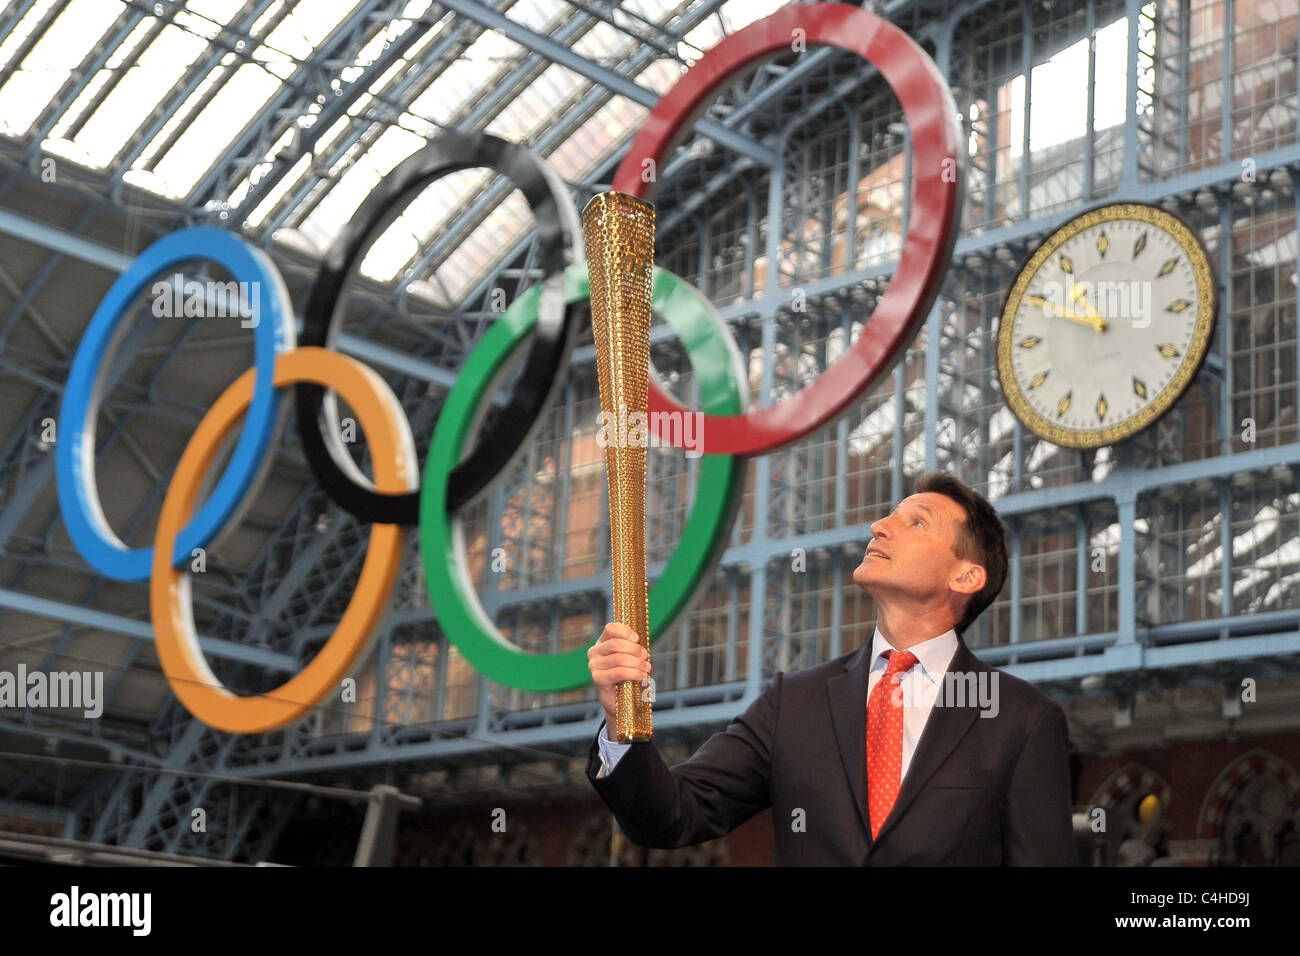 Sebastian Coe (Chairman of LOCOG) looks up at the torch as he holds it under the Olympic rings. 2012 London Olympic - Stock Image